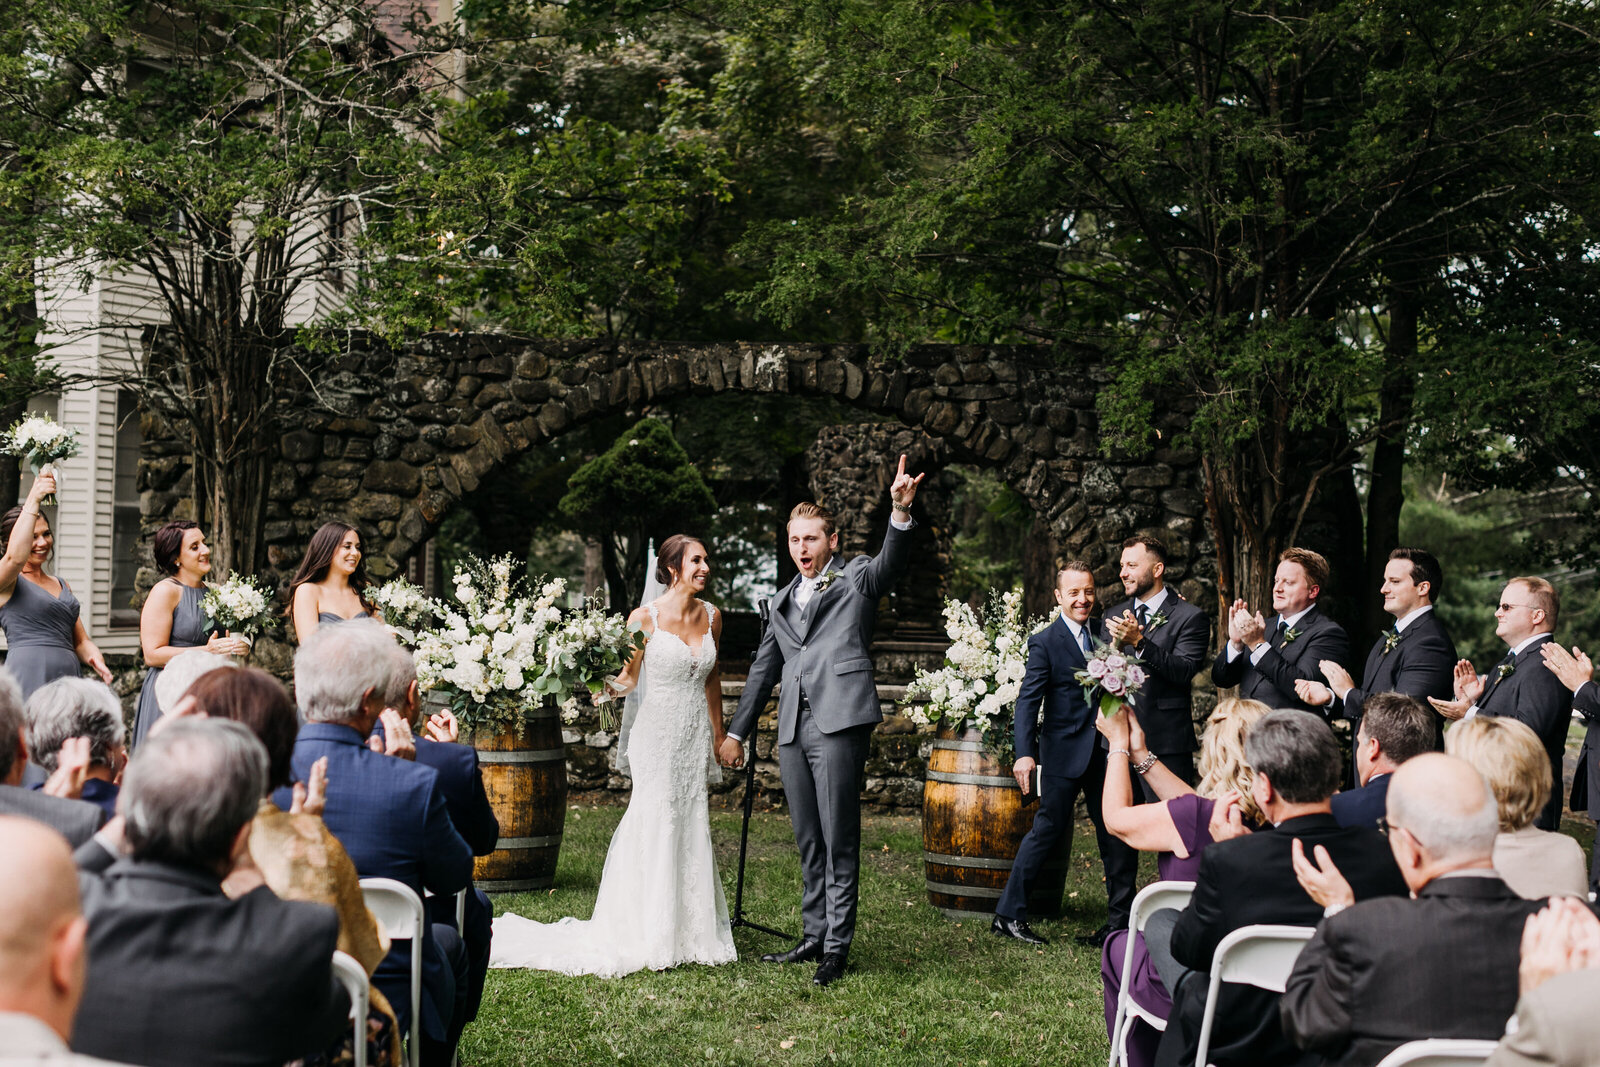 groom celebrating ceremony at winery